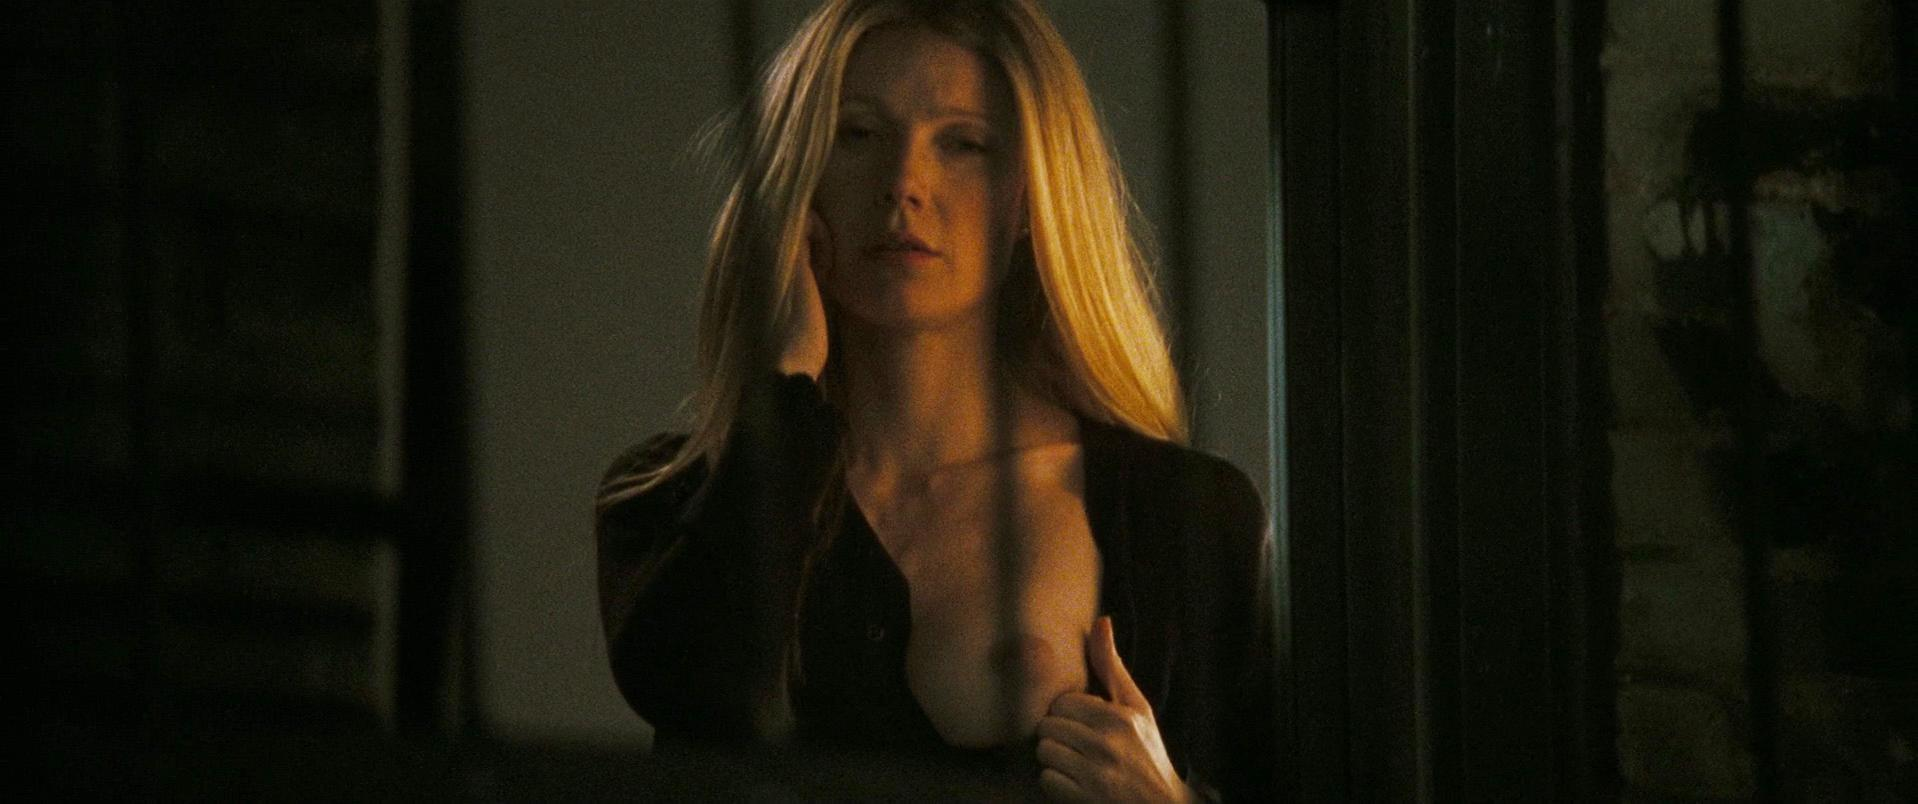 gweneth-paltrow-topless-video-hot-roast-slut